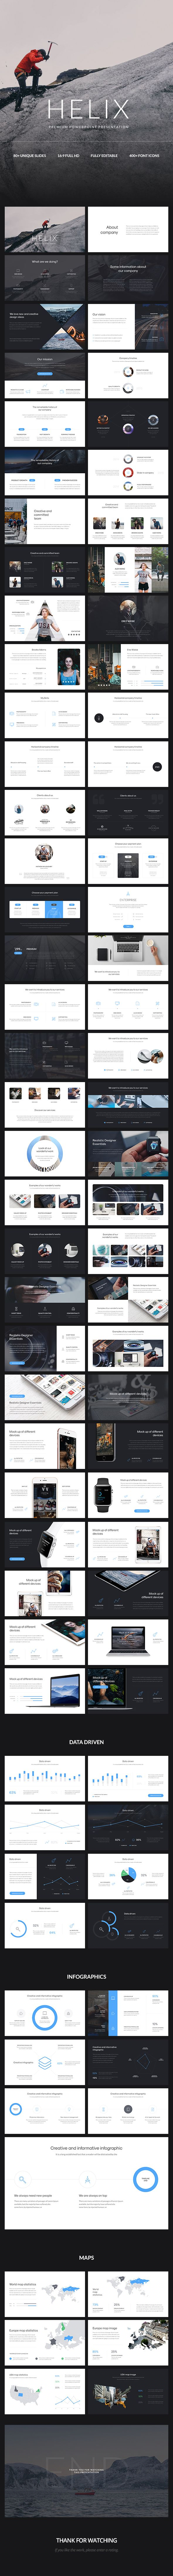 Helix PowerPoint Presentation  #deck #design #digital • Available here → http://graphicriver.net/item/helix-powerpoint-presentation/15473833?ref=pxcr                                                                                                                                                                                 More